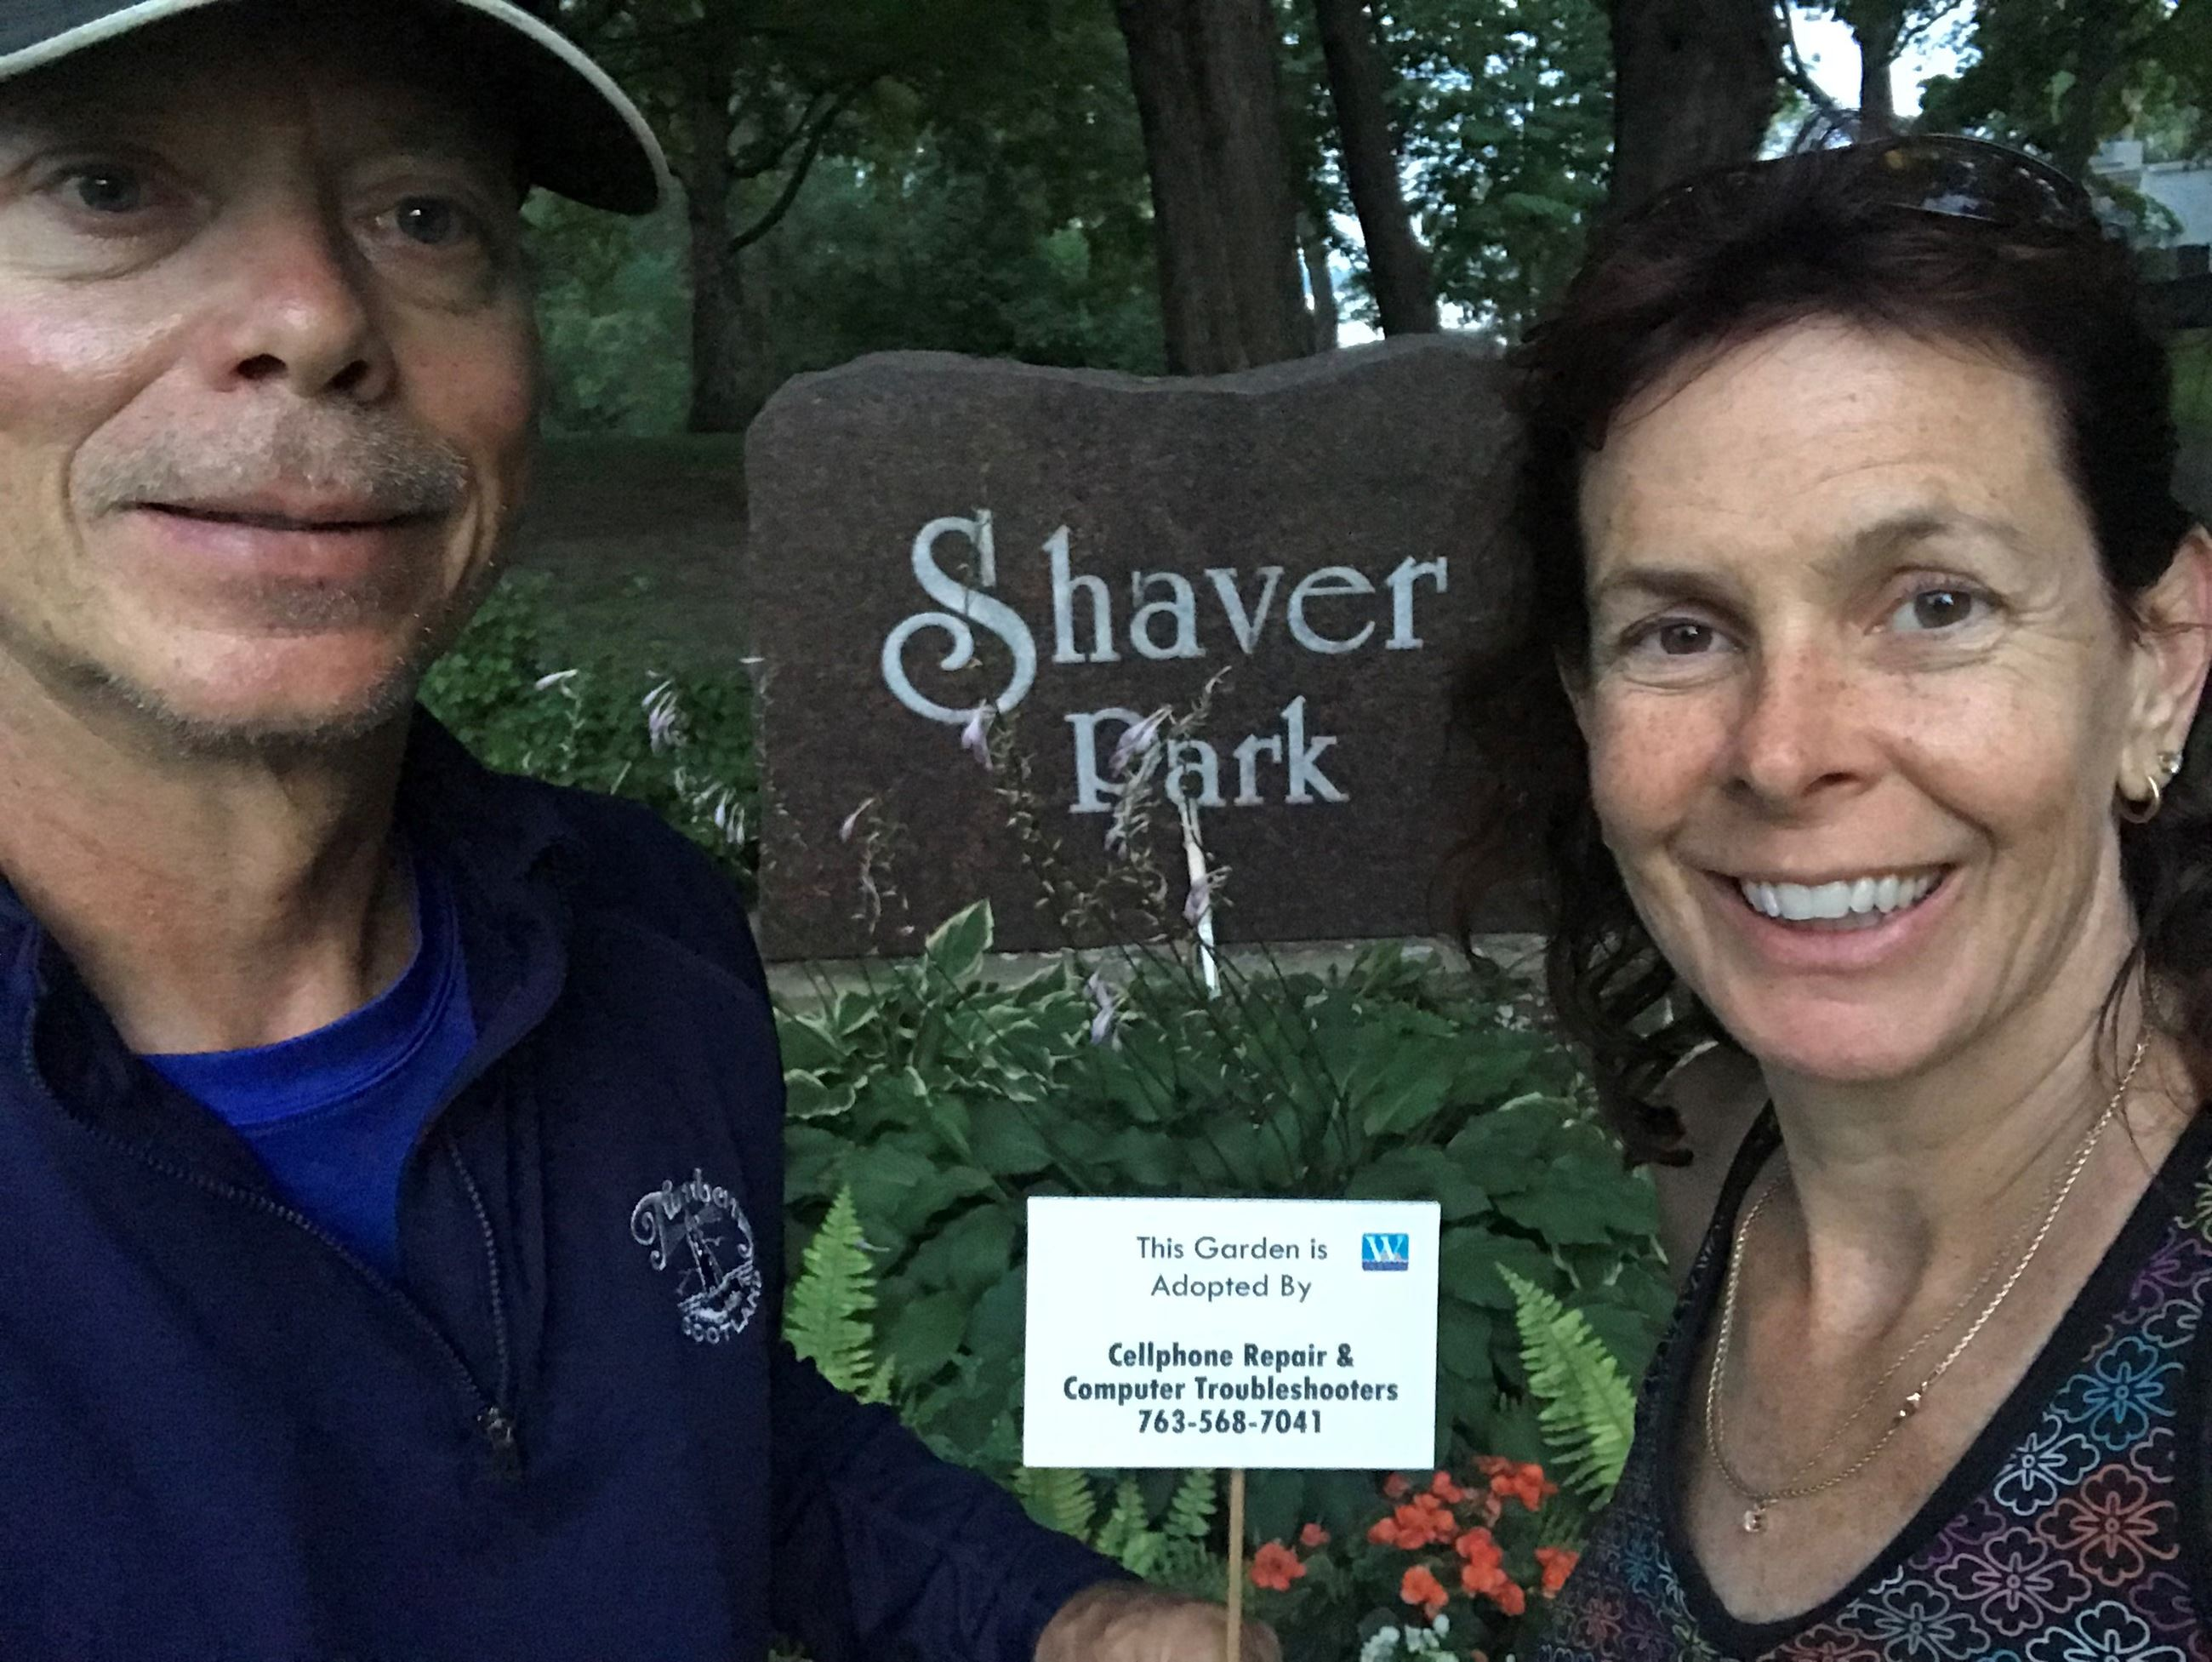 Man and woman in front of Shaver Park sign